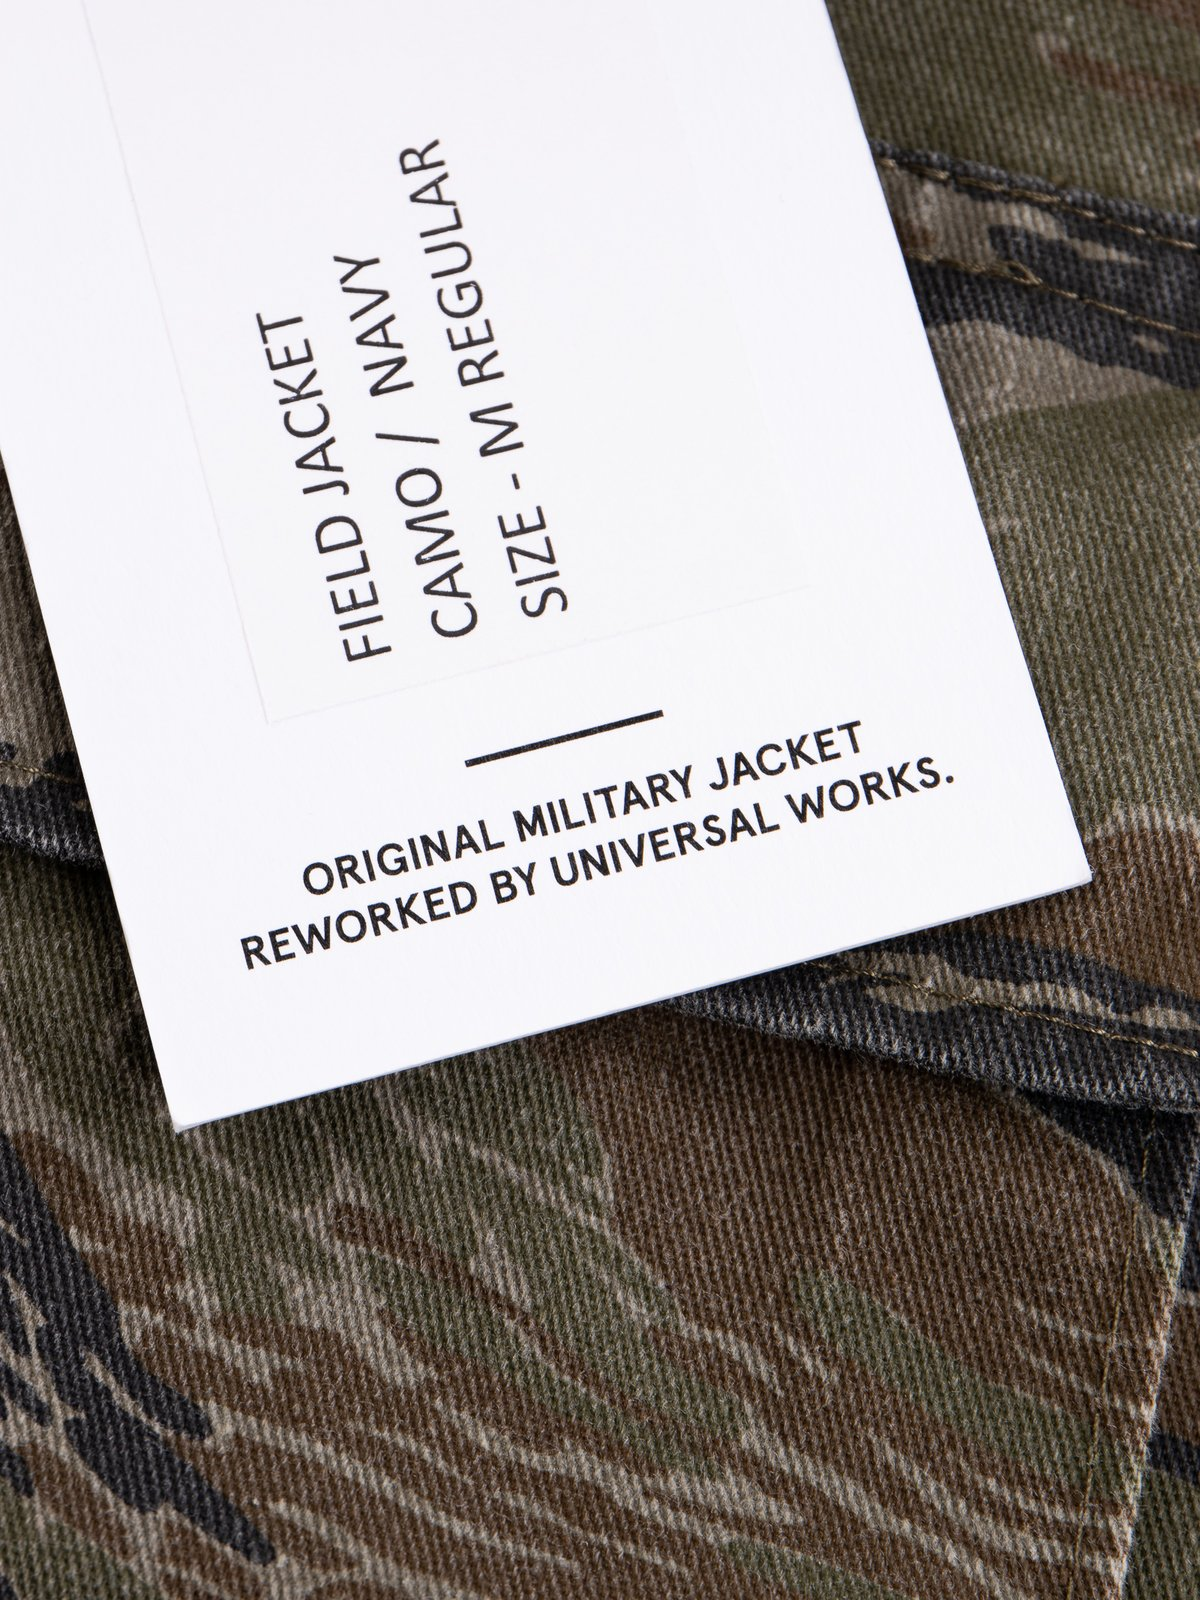 Reworks Camo/Navy Field Jacket - Image 10